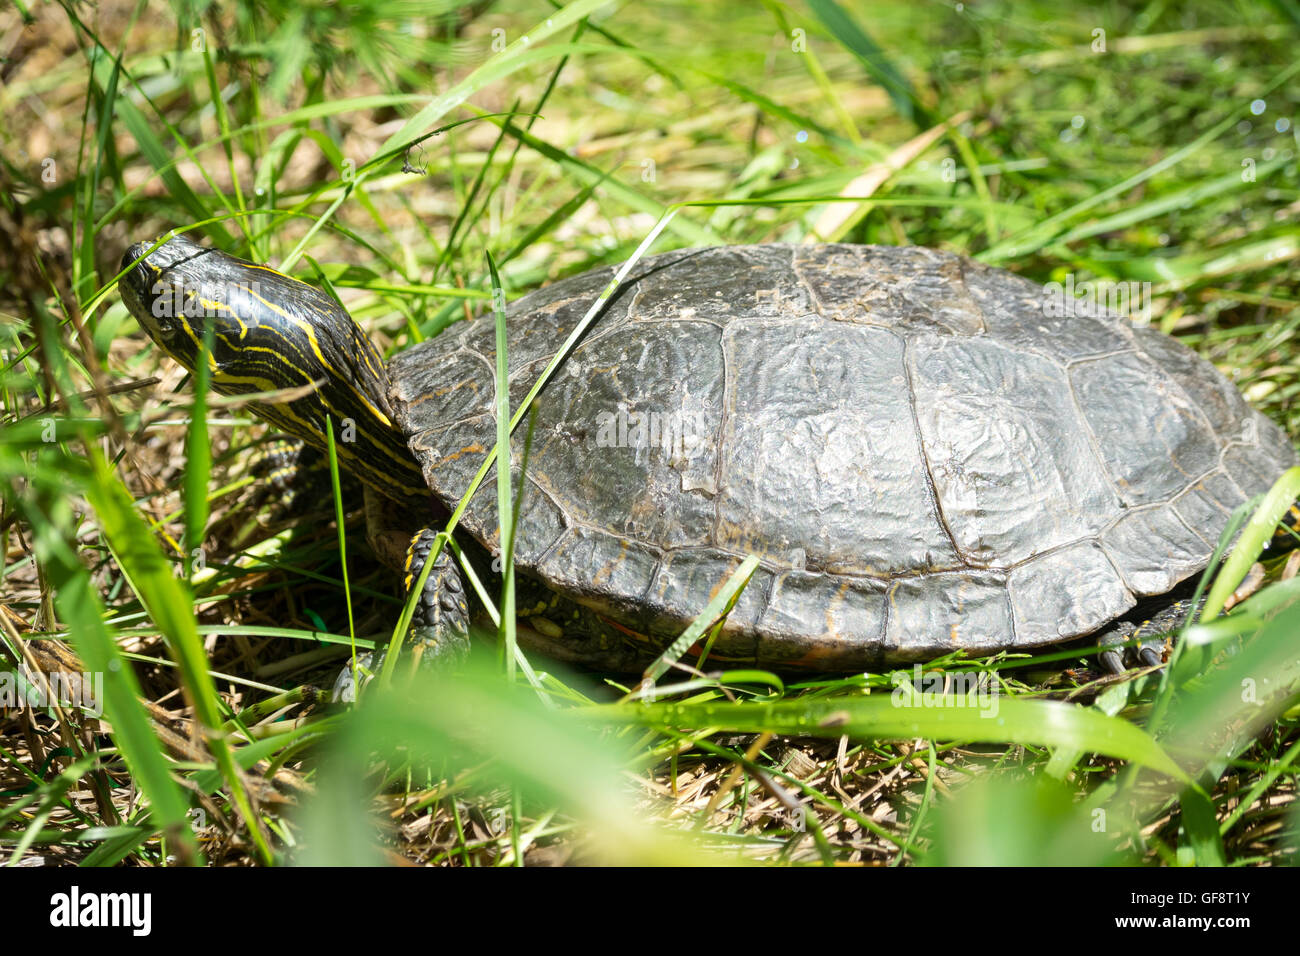 A Western painted turtle (Chrysemys picta bellii), in captivity, at the Calgary Zoo in Calgary, Alberta, Canada. - Stock Image